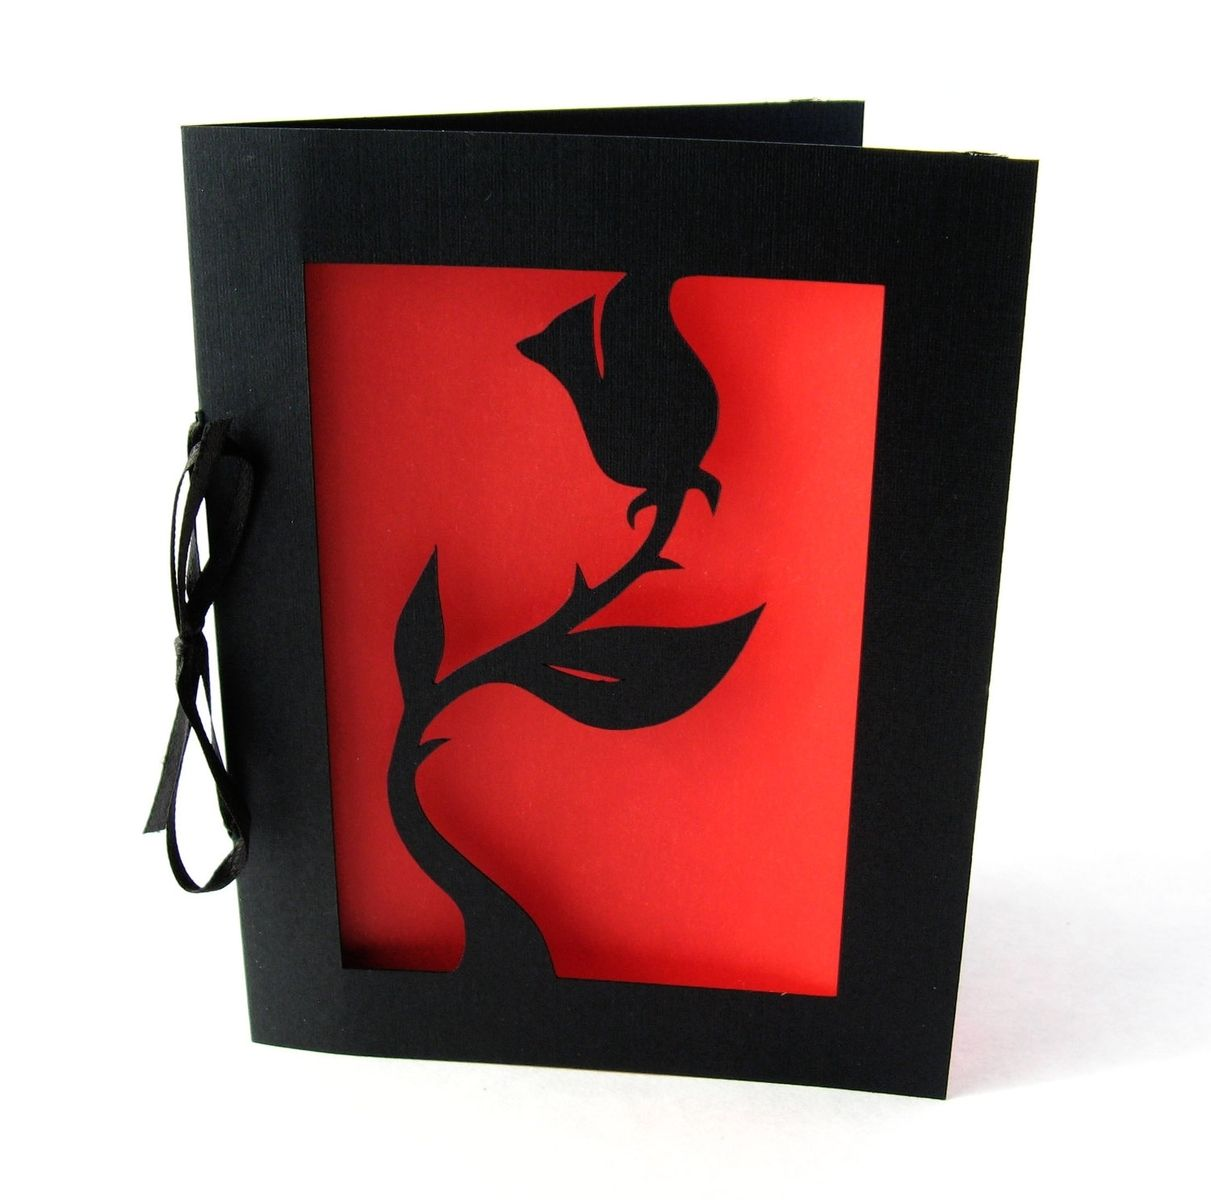 Buy A Hand Made Black Rose Valentine Cut Paper Silhouette Greeting